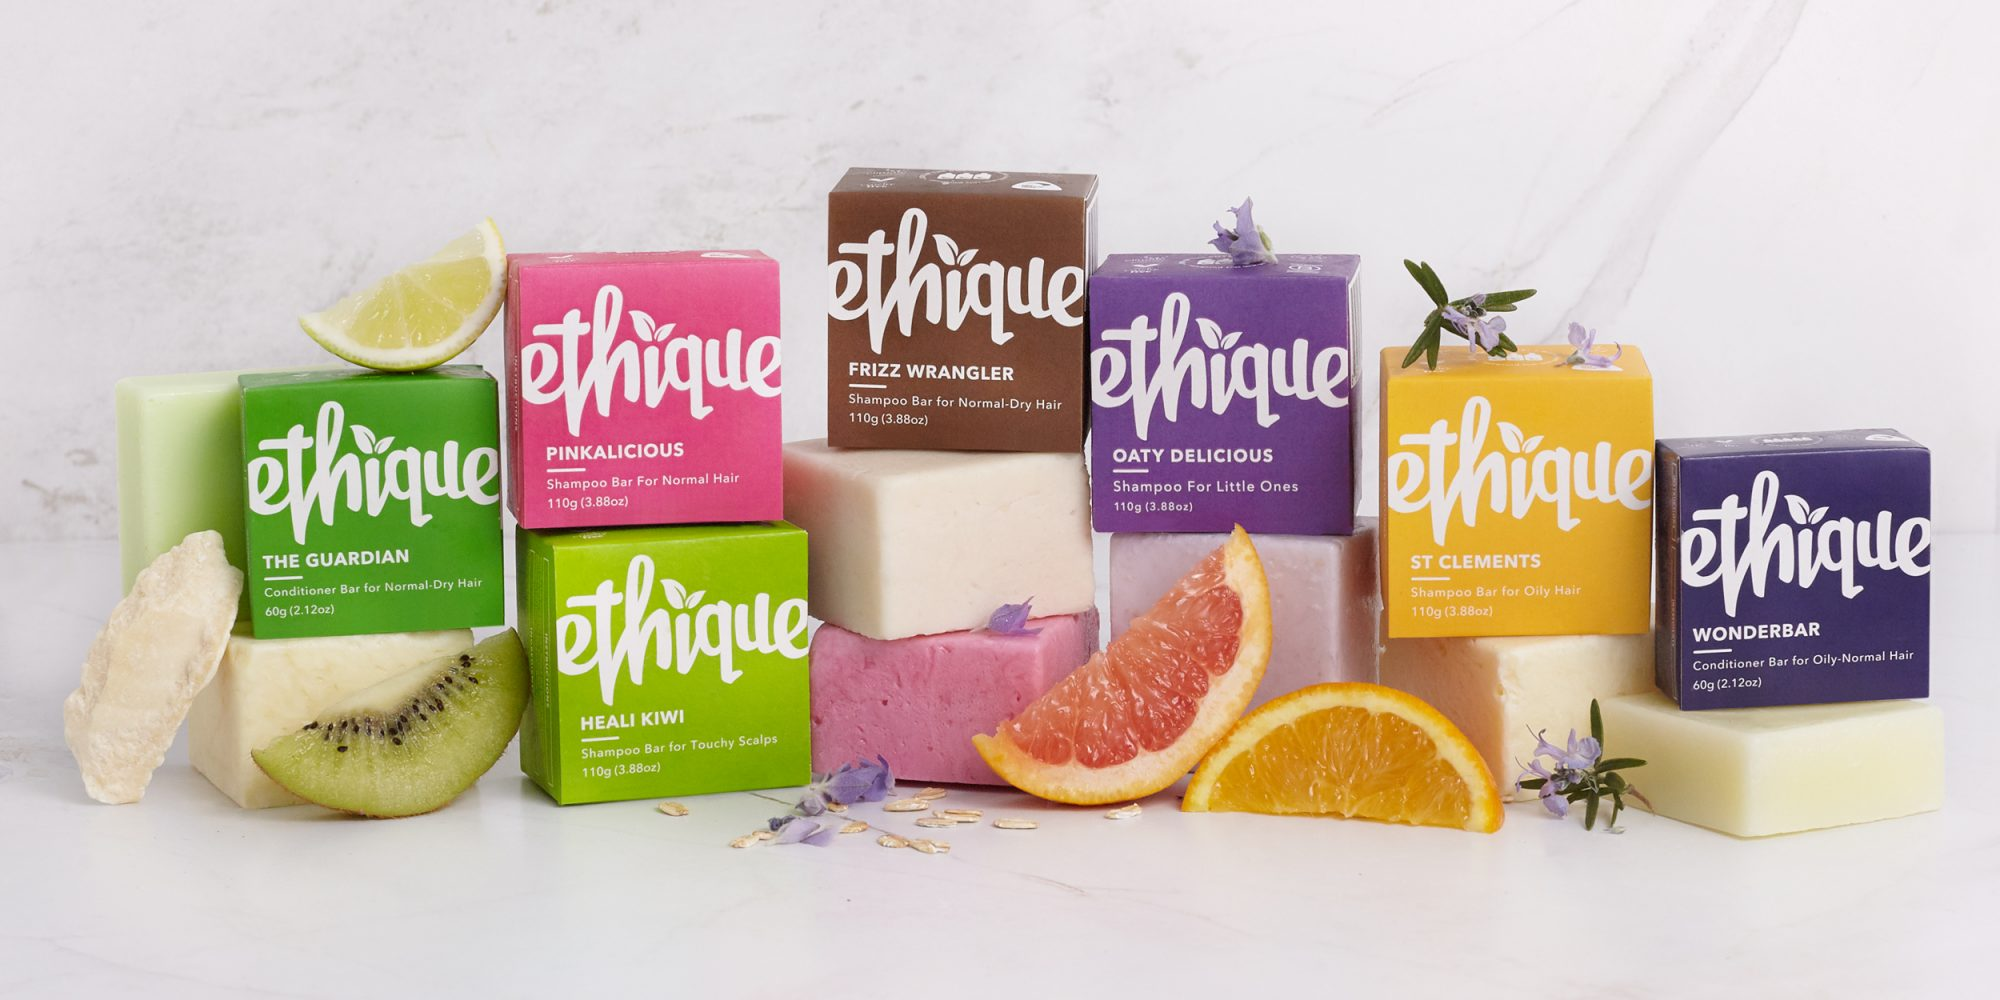 Ethique Is Leading The Plastic-Free Beauty Movement Around The World